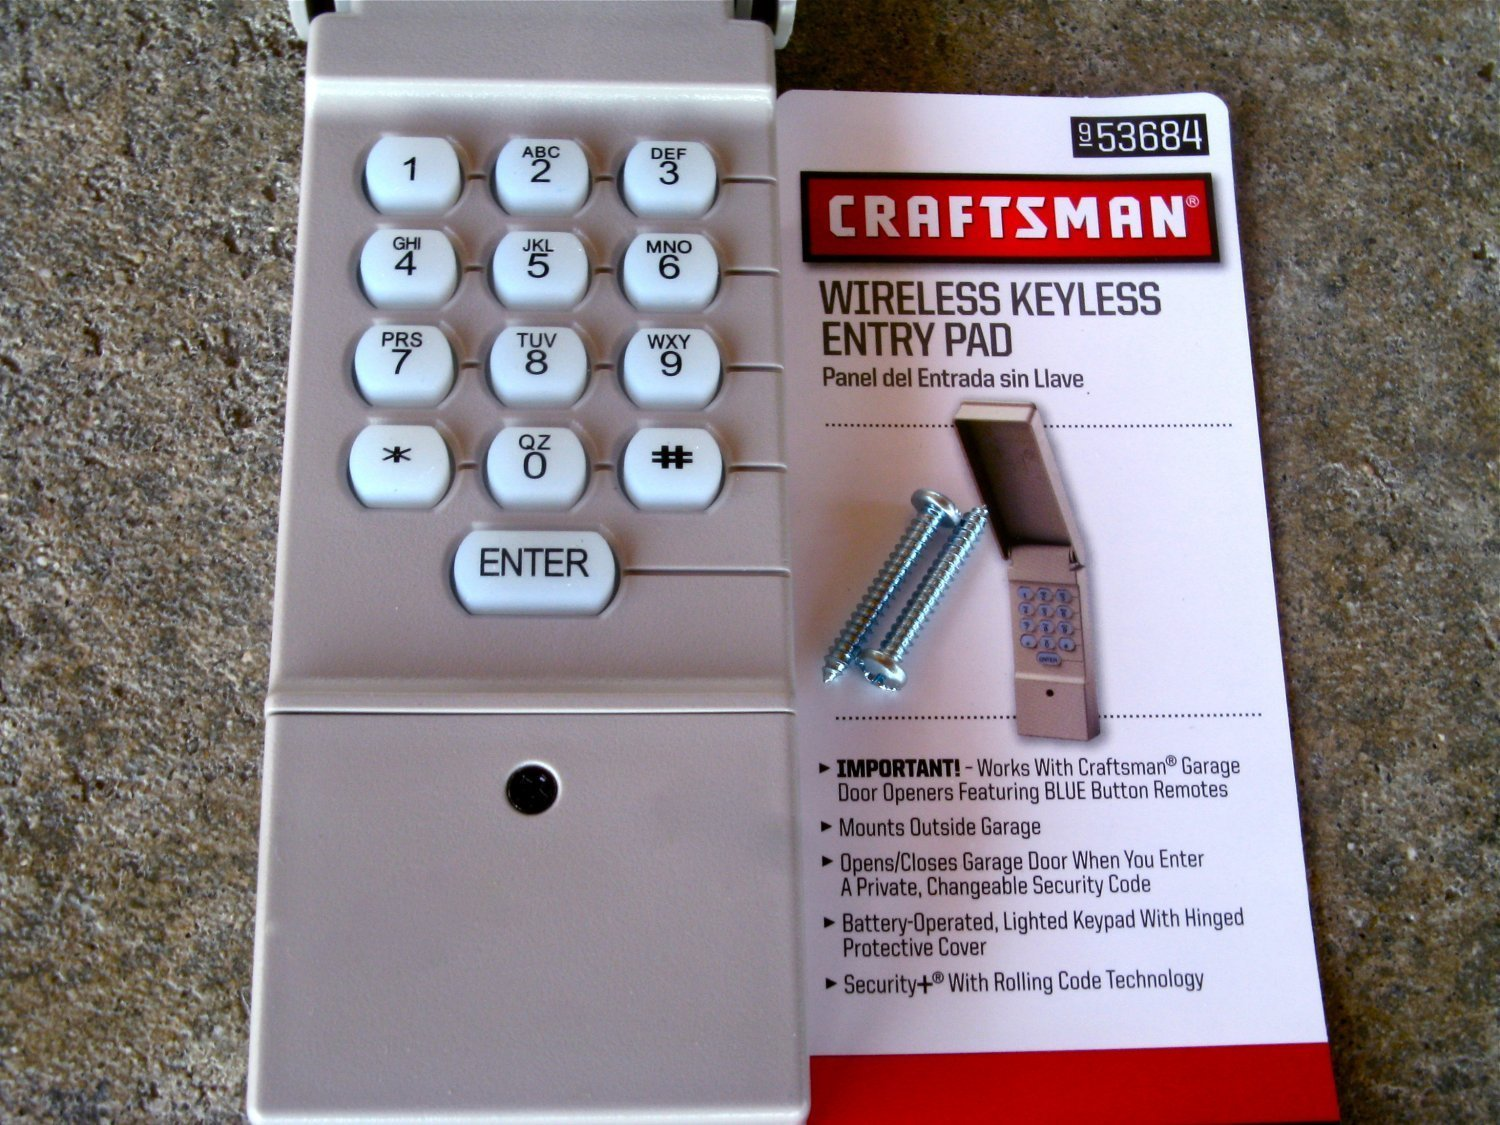 Craftsman 13953684 LiftMaster 976LM LiftMaster 977LM